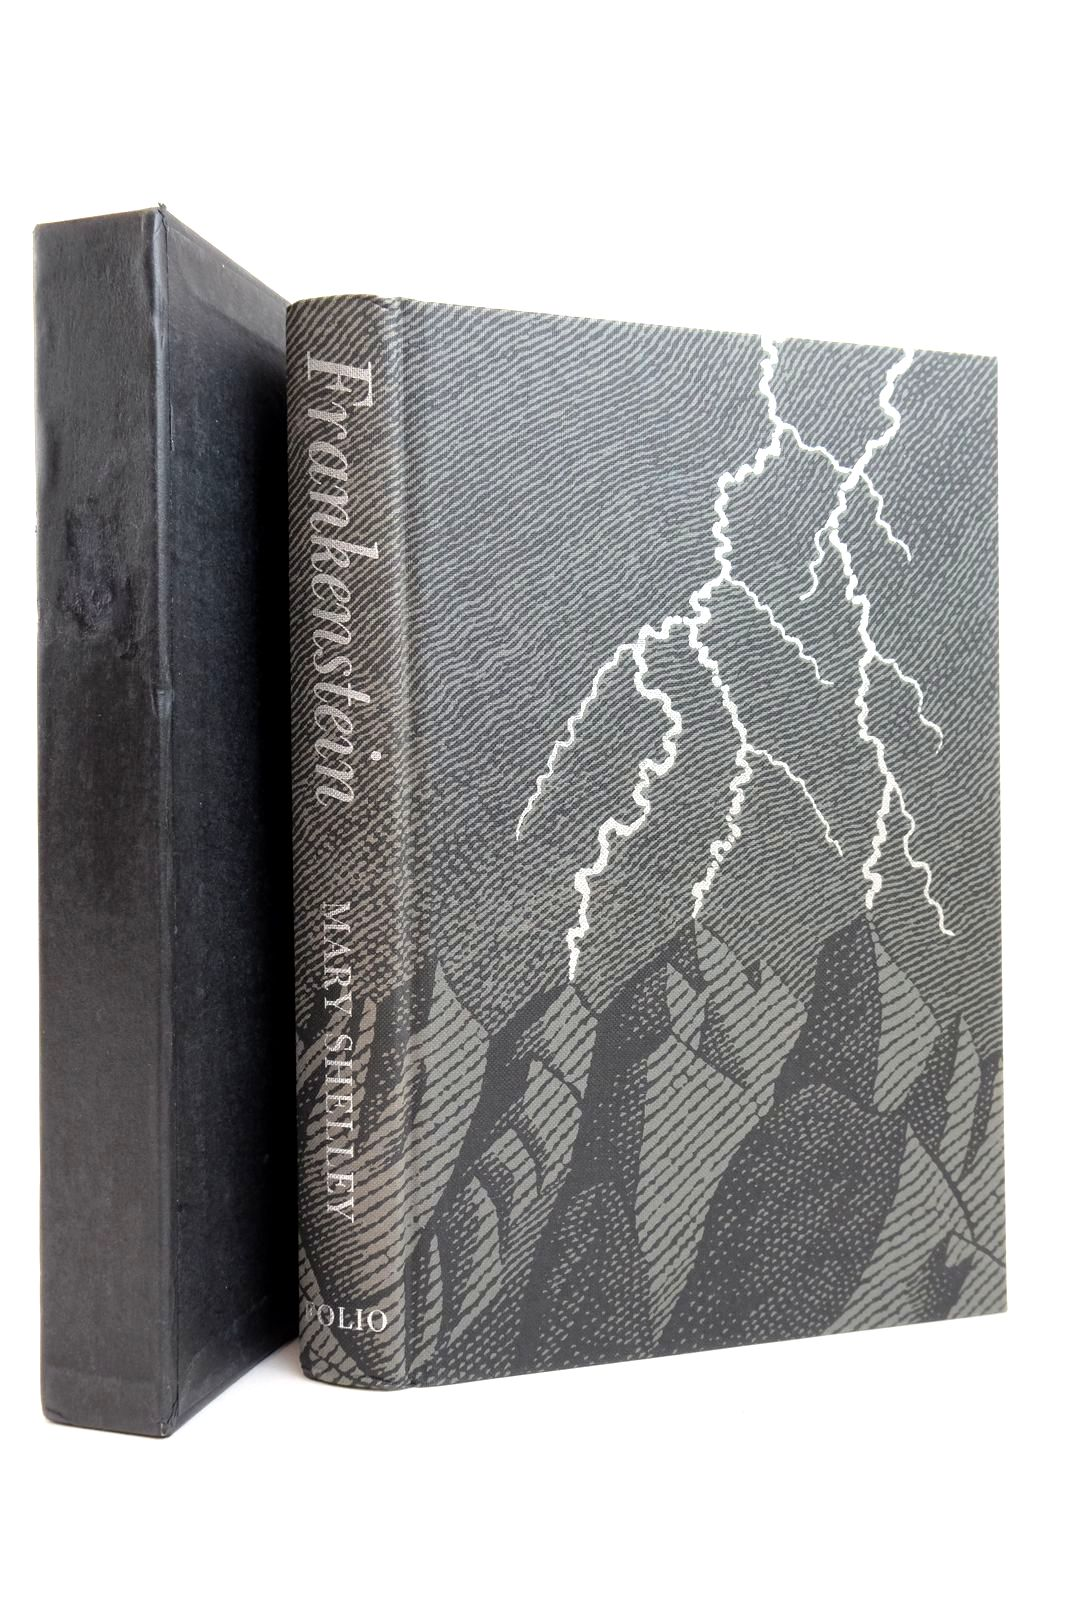 Photo of FRANKENSTEIN OR THE MODERN PROMETHEUS written by Shelley, Mary Seymour, Miranda illustrated by Brockway, Harry published by Folio Society (STOCK CODE: 2134691)  for sale by Stella & Rose's Books